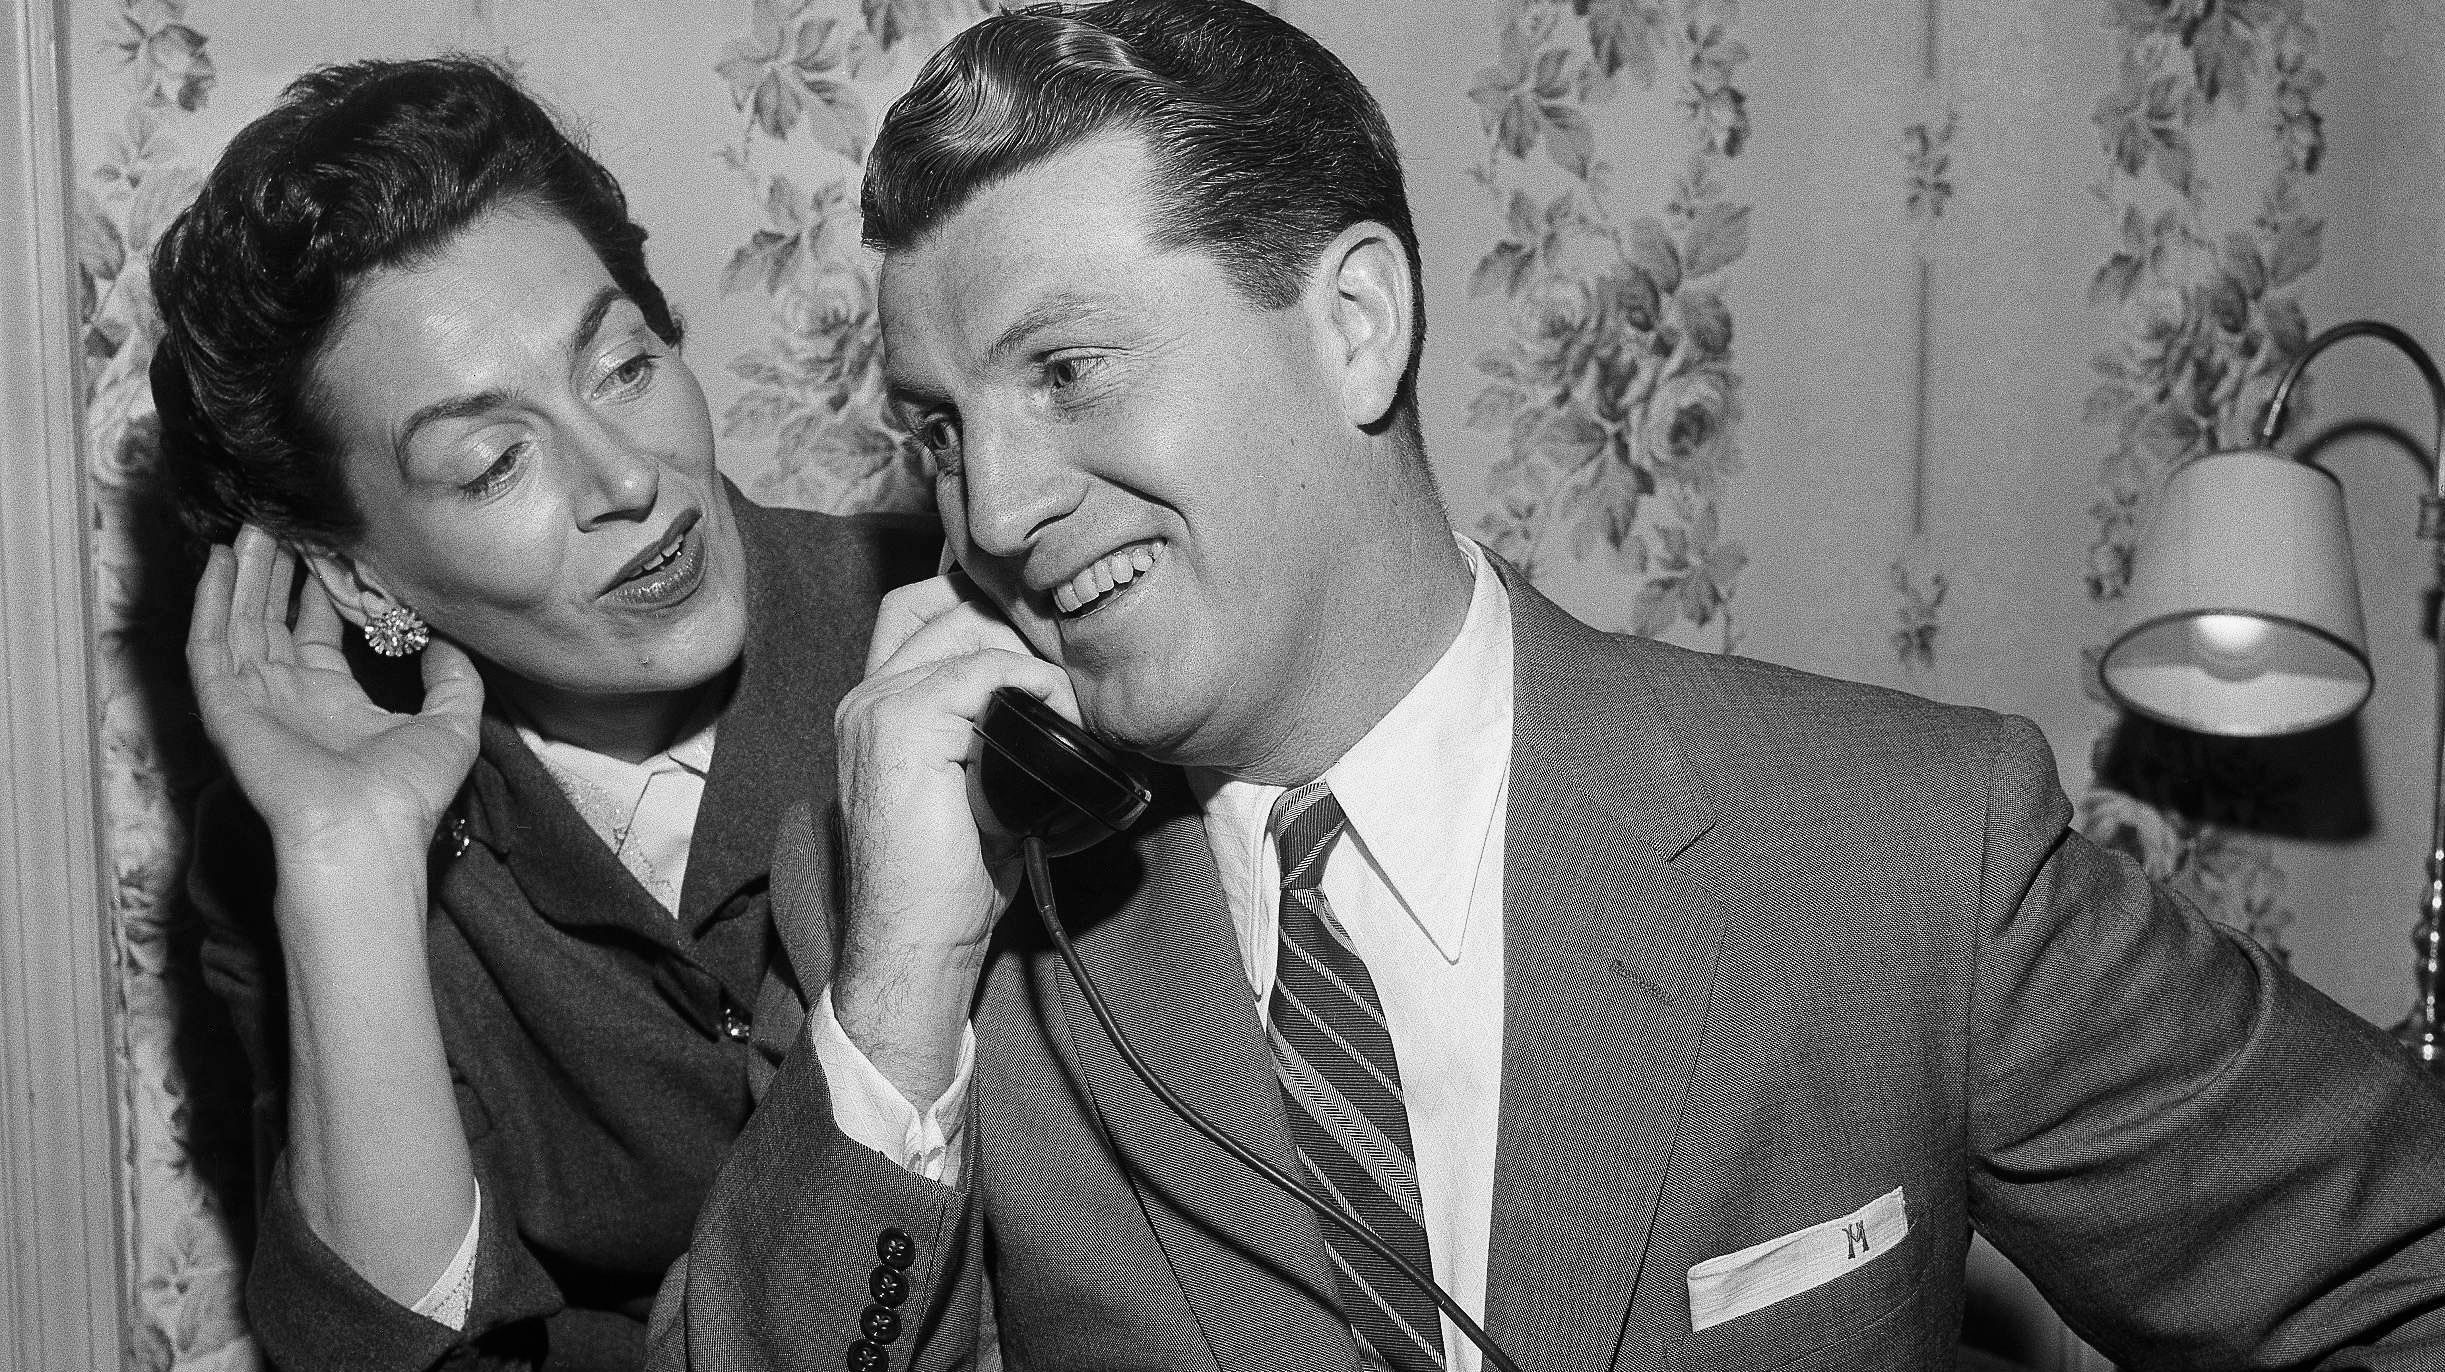 Basketball coach Frank McGuire speaks on the phone smiling while hie wife listens, in 1956